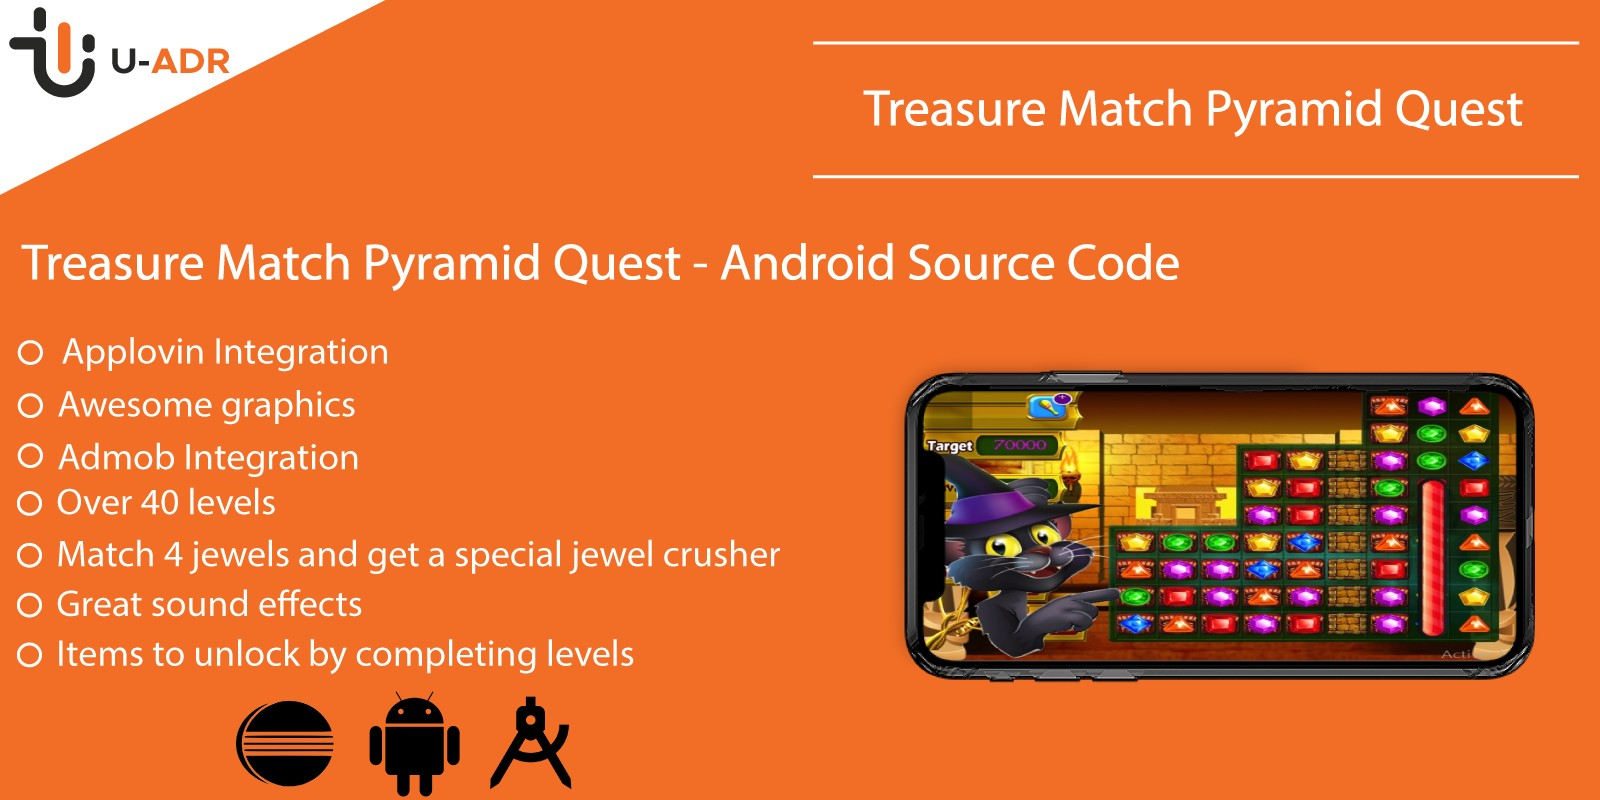 Treasure Match Pyramid Quest - Android Source Code